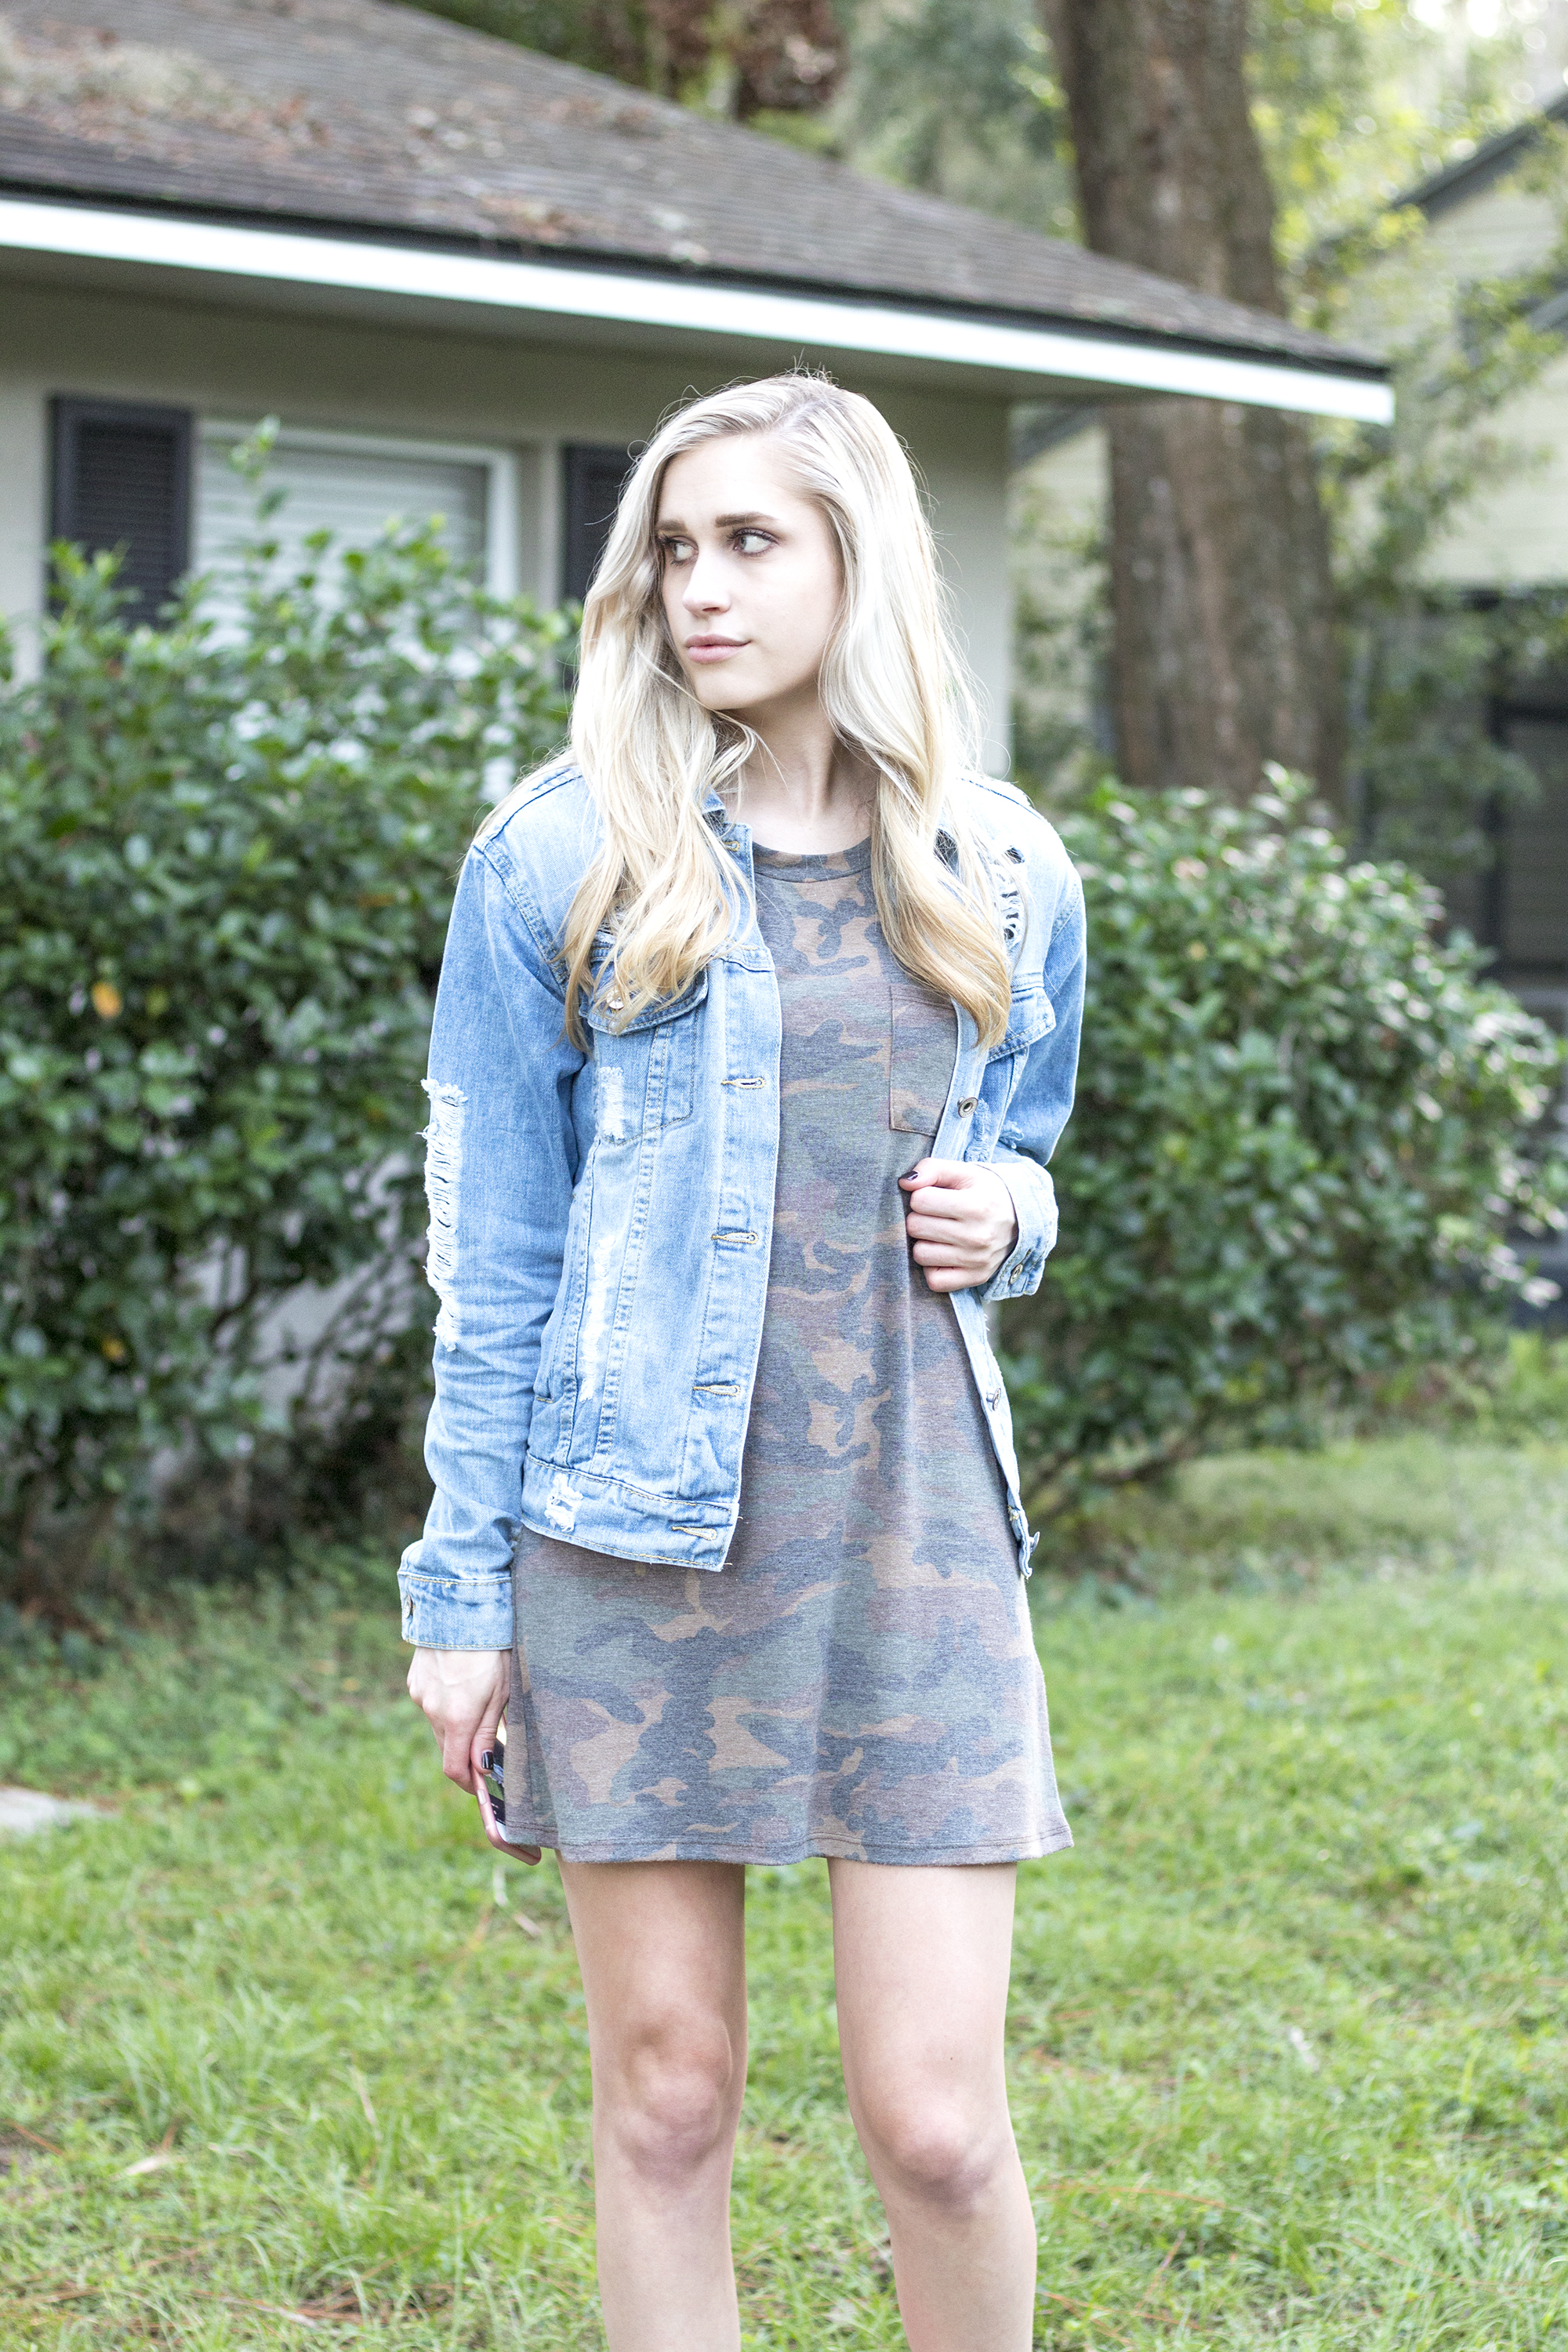 styelled-blog-fashion-style-beauty-lifestyle-blogger-camo-shirt-dress-denim-distressed-jacket-blonde-fall-trends-06